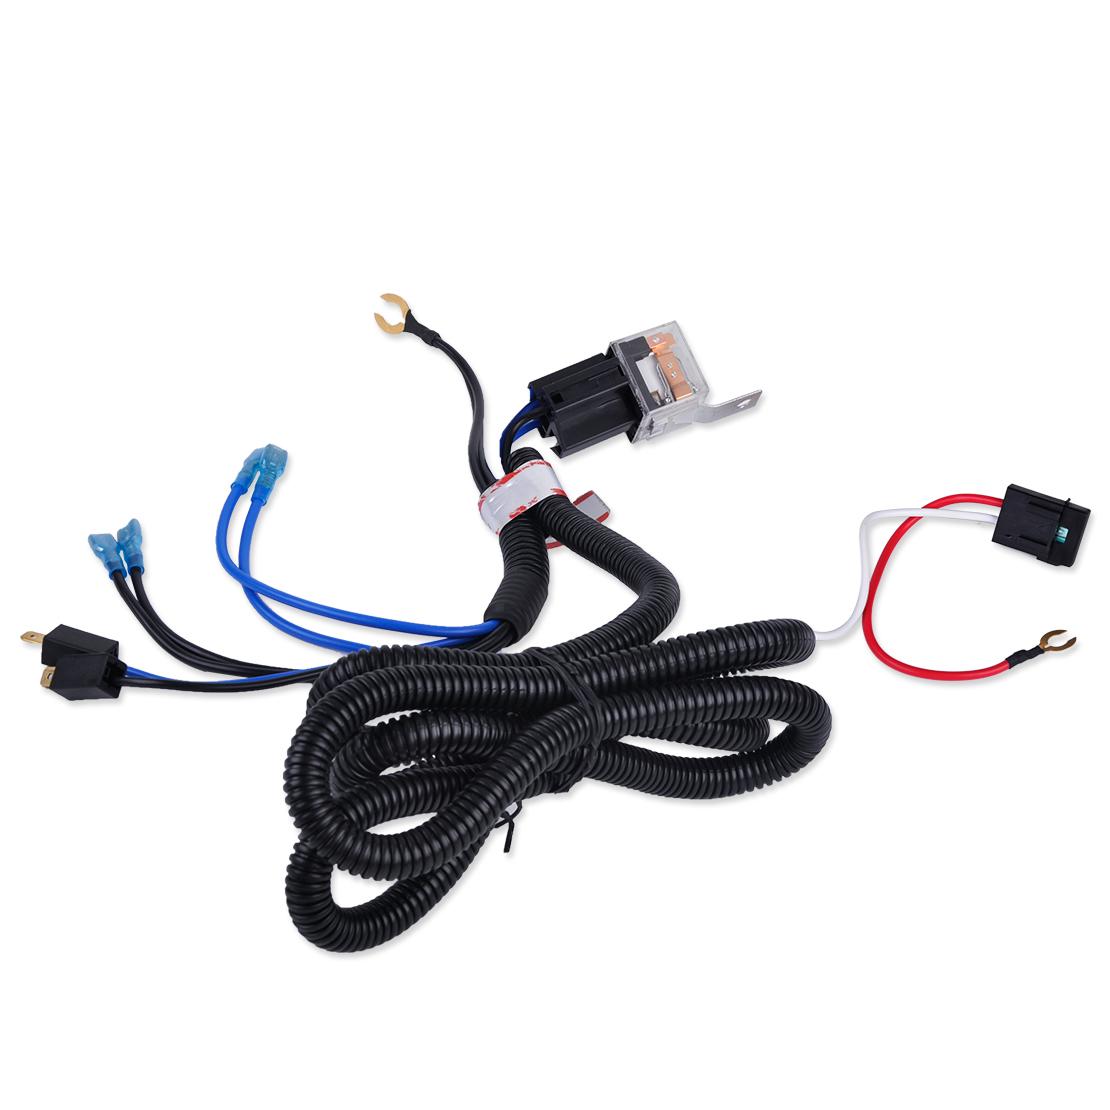 beler new 12v wiring harness relay kit fit for car auto truck grille mount blast tone horn for vw audi ford bmw chevrolet [ 1110 x 1110 Pixel ]